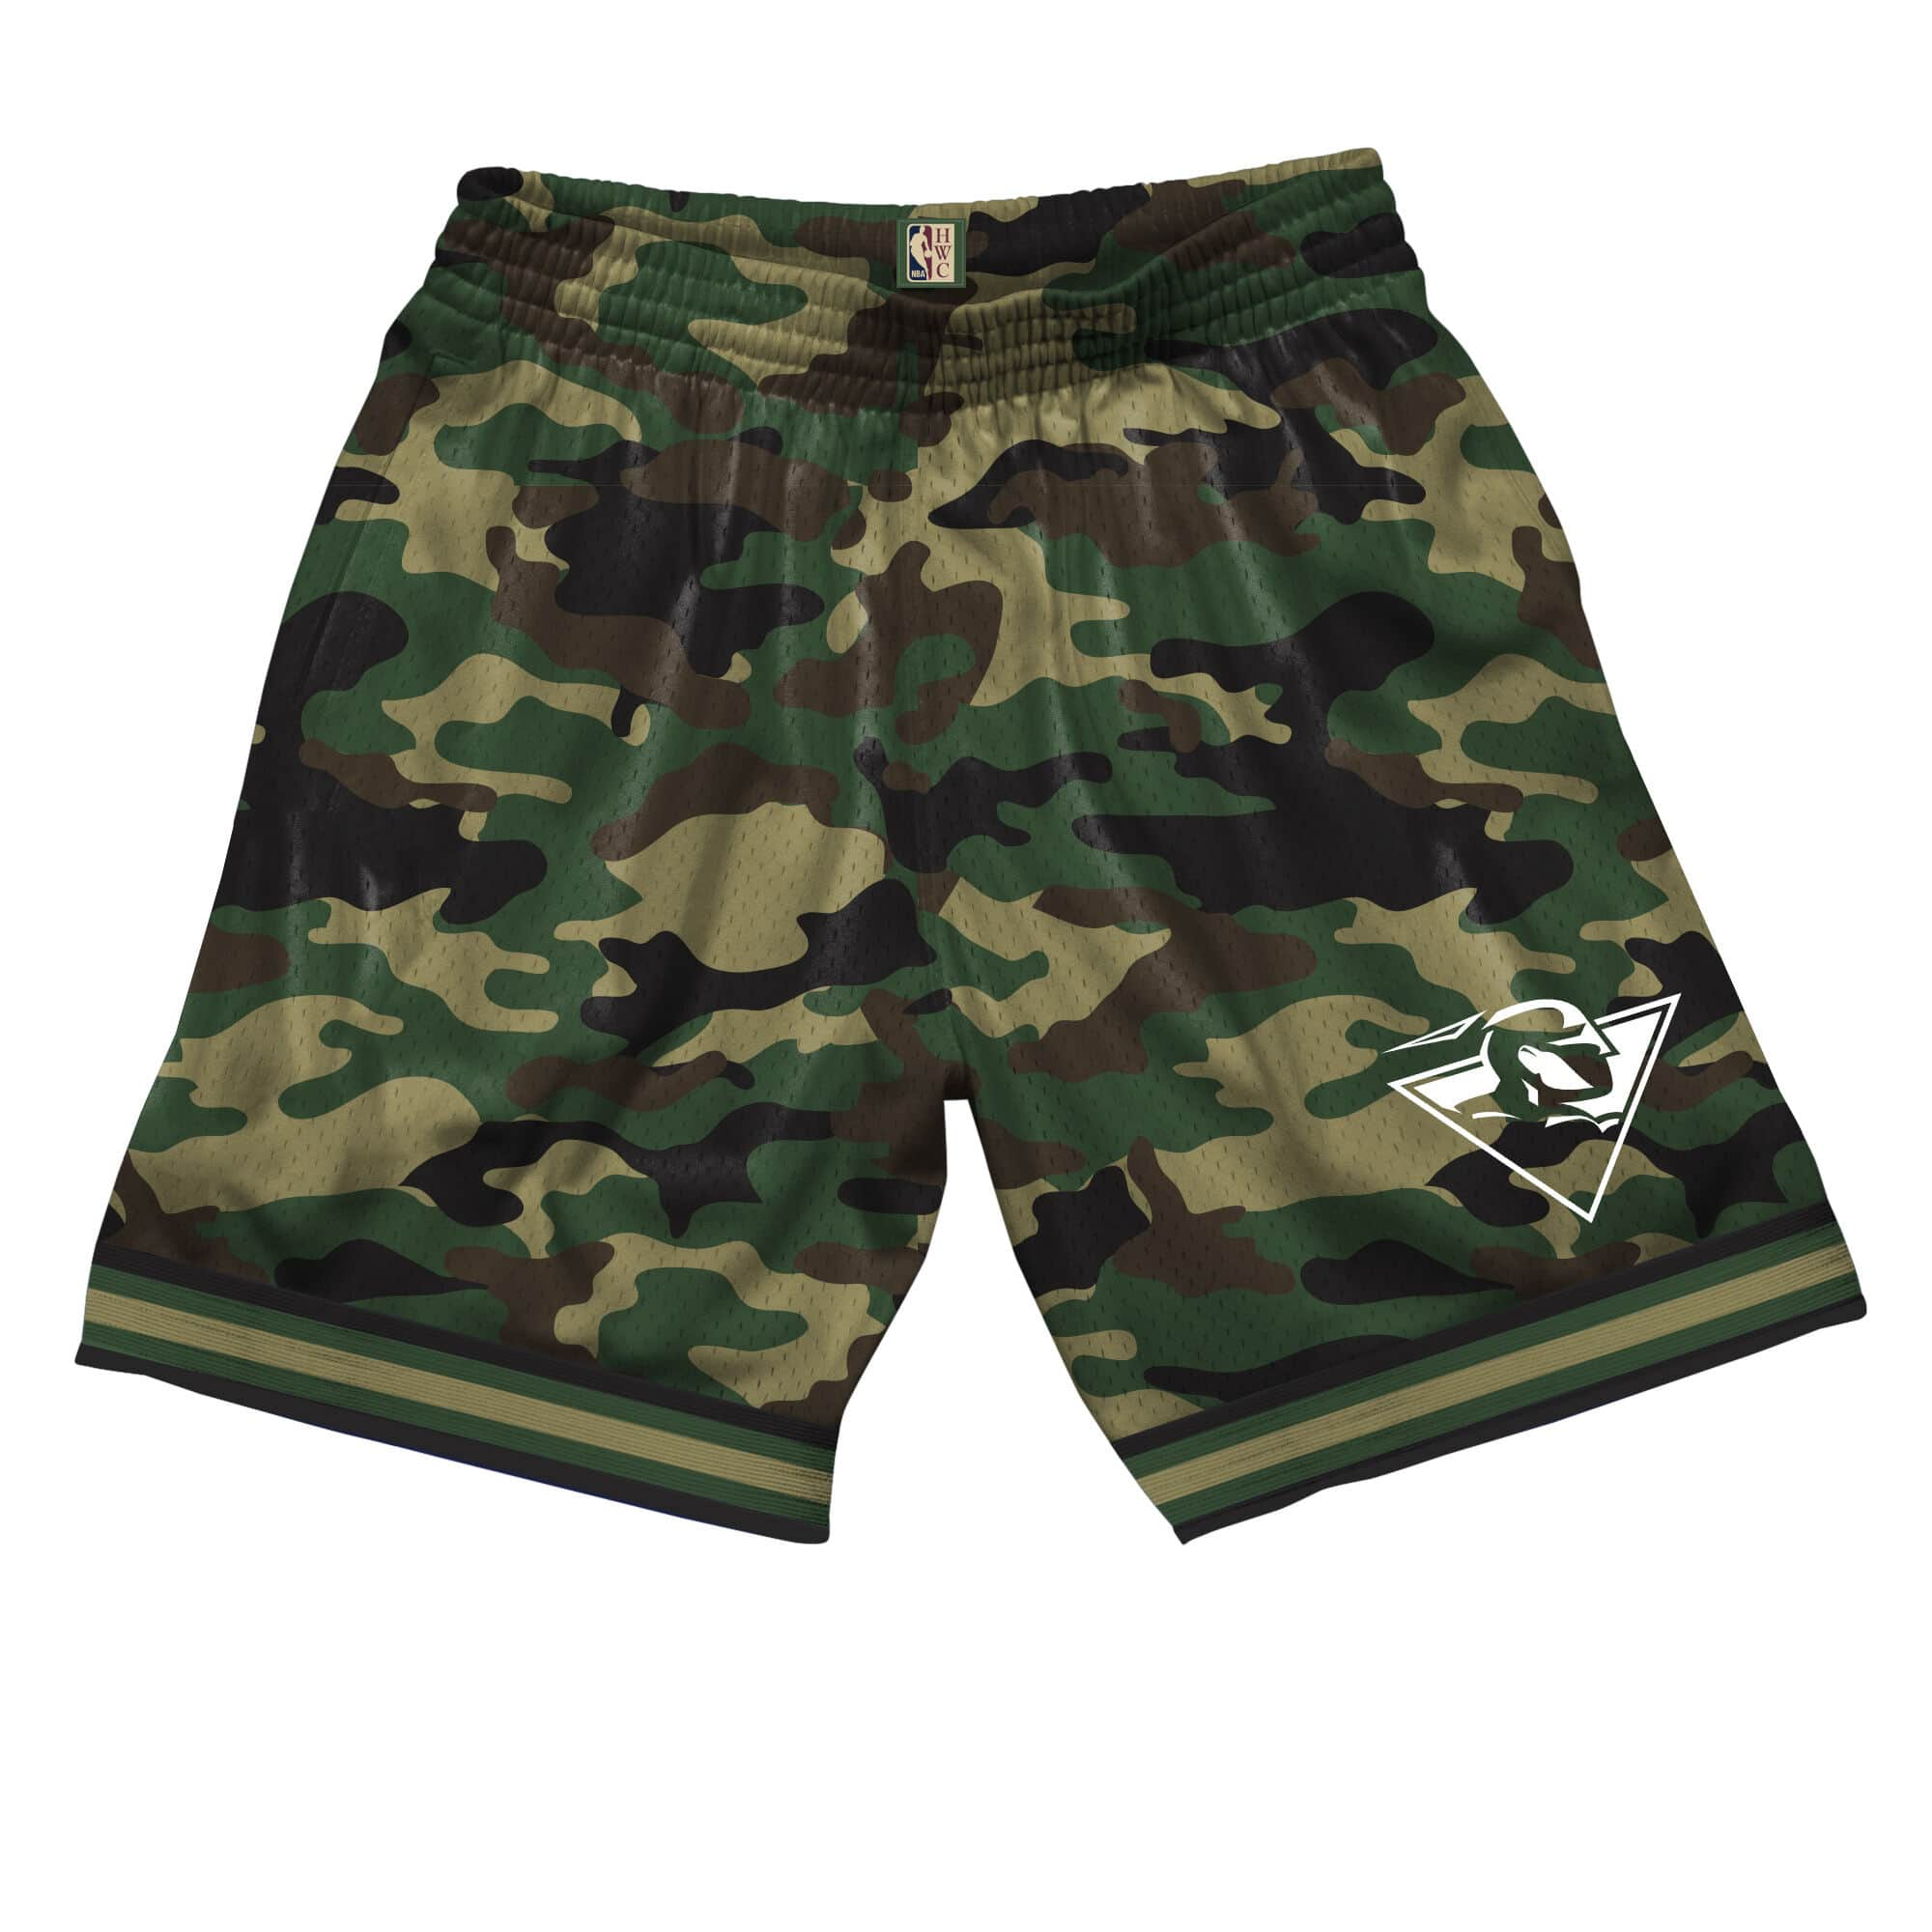 Camo Mesh Shorts Golden State Warriors